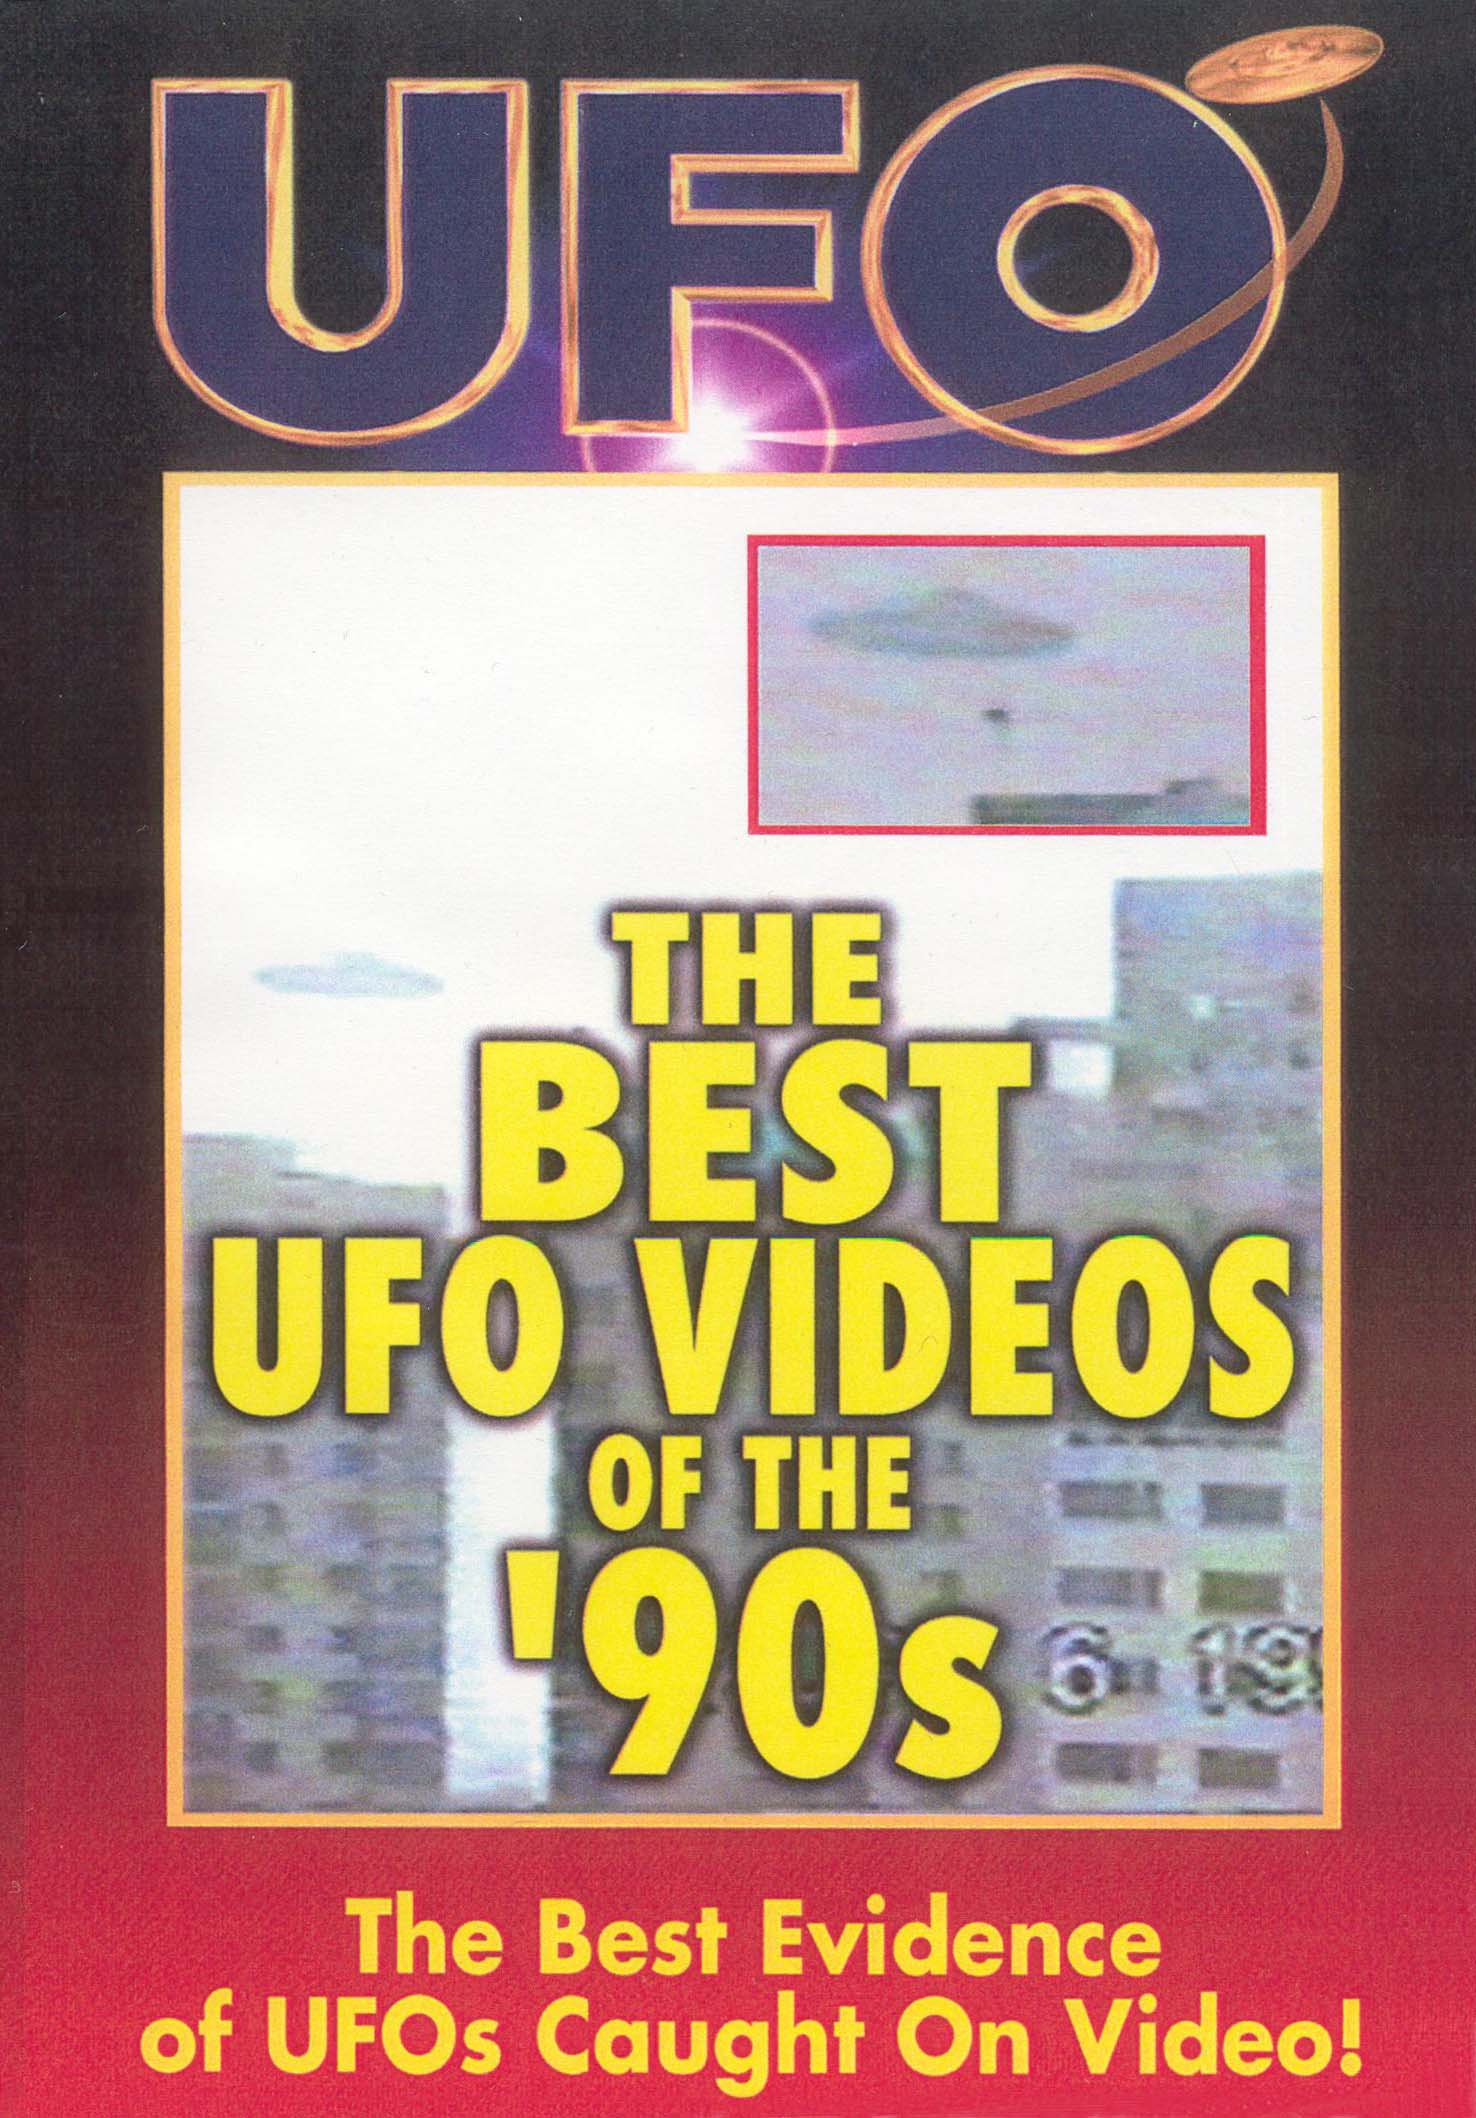 The Best UFO Video of the '90s